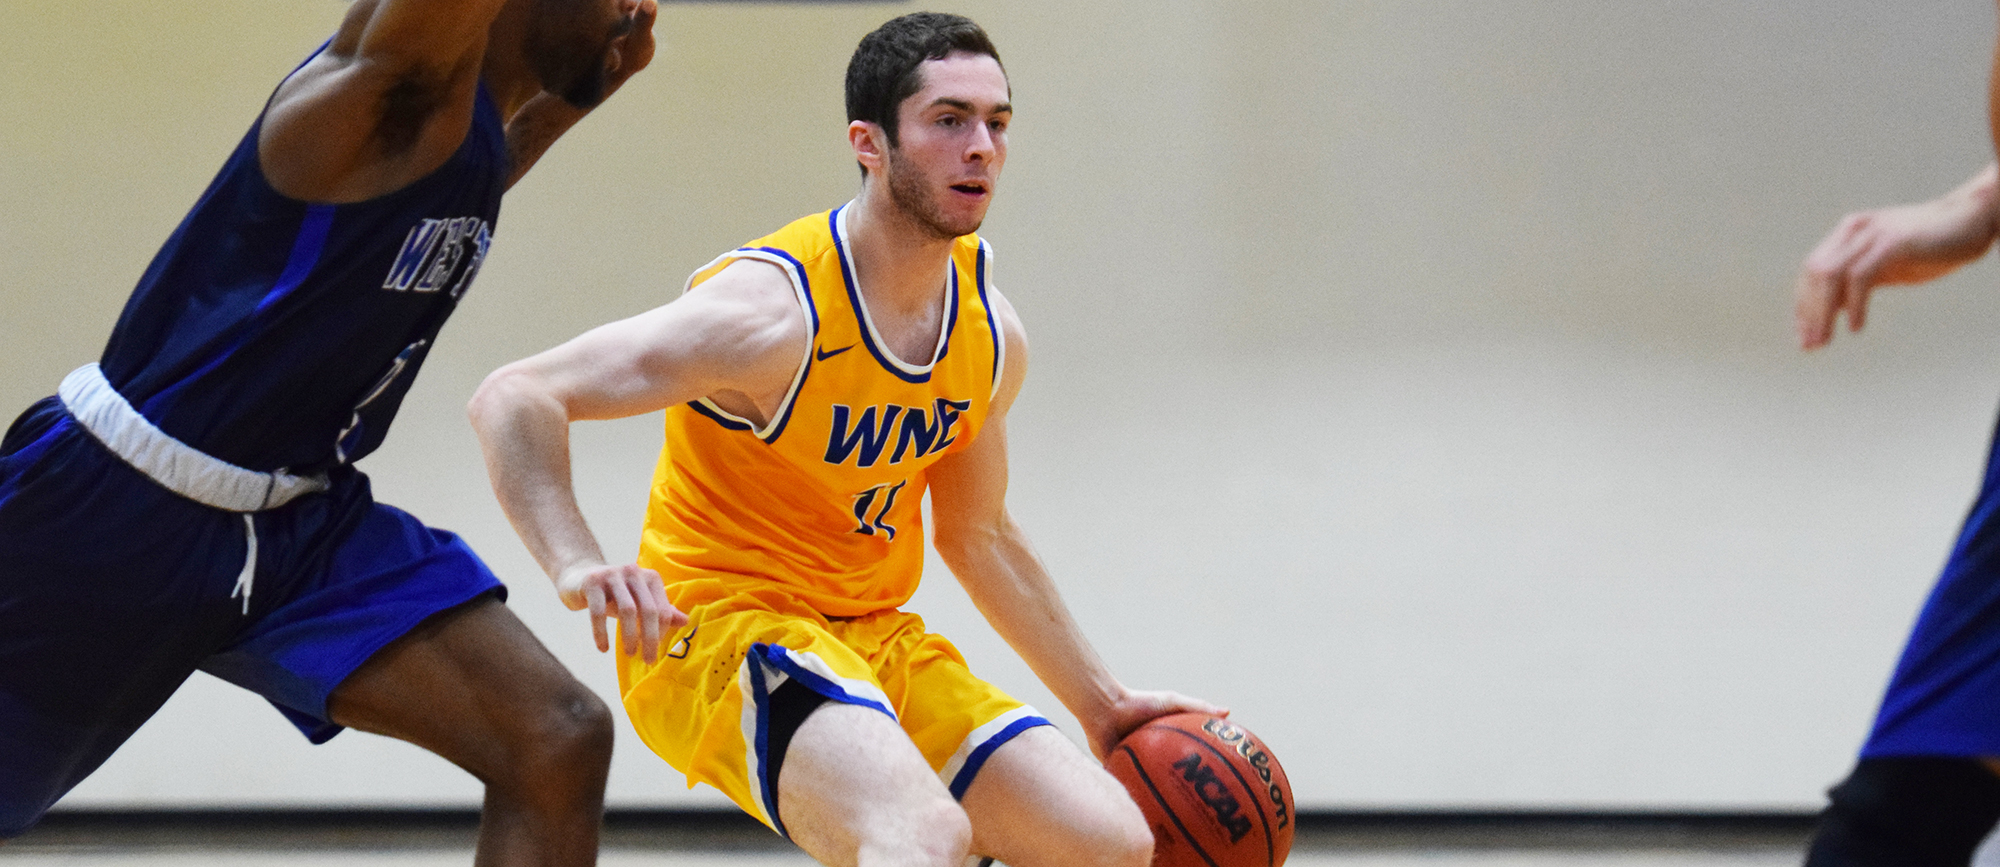 Sophomore Mike McGuire scored 12 of his 14 points in the second half of Western New England's 92-83 victory over Westfield State on Saturday (photo by Rachael Margossian).